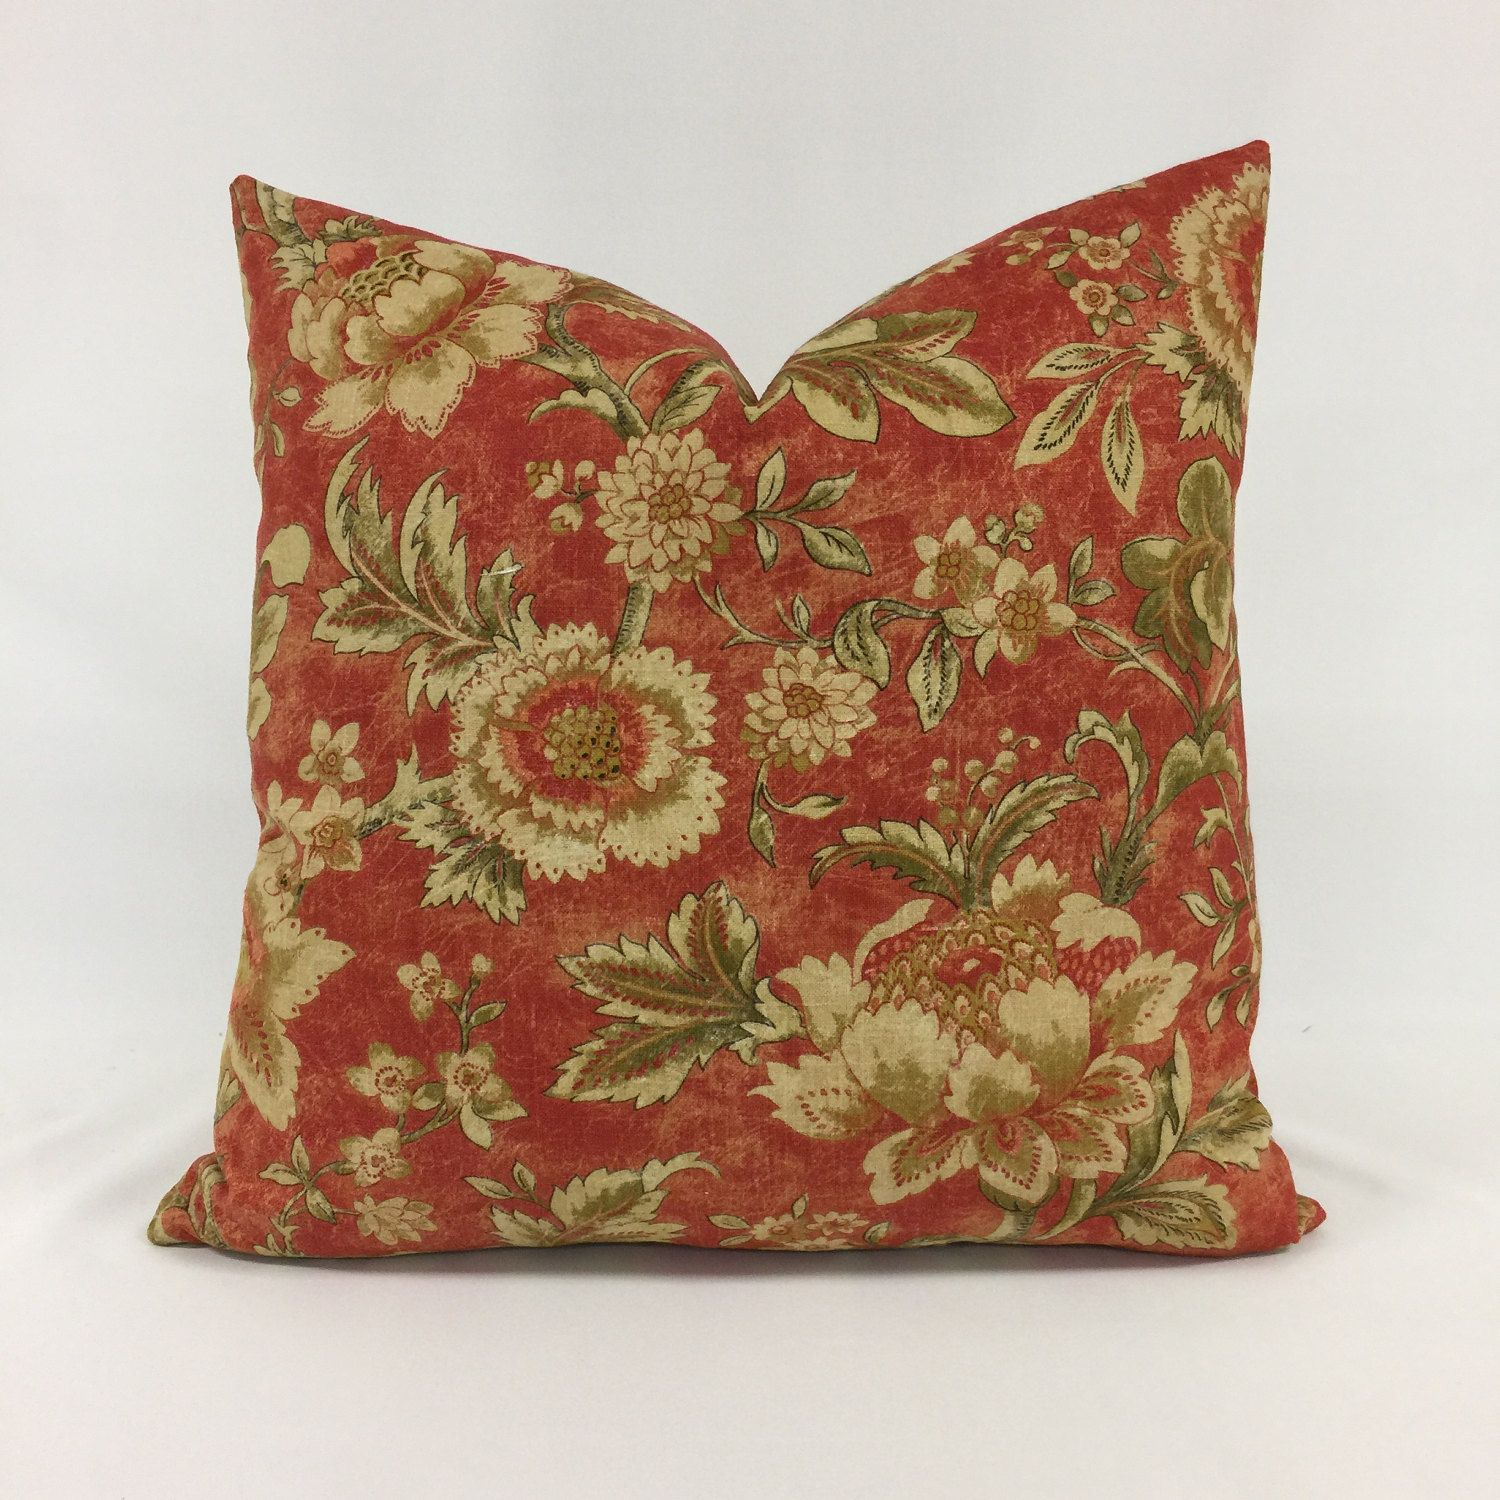 Pillow cover raymond waites distressed linen traditional floral